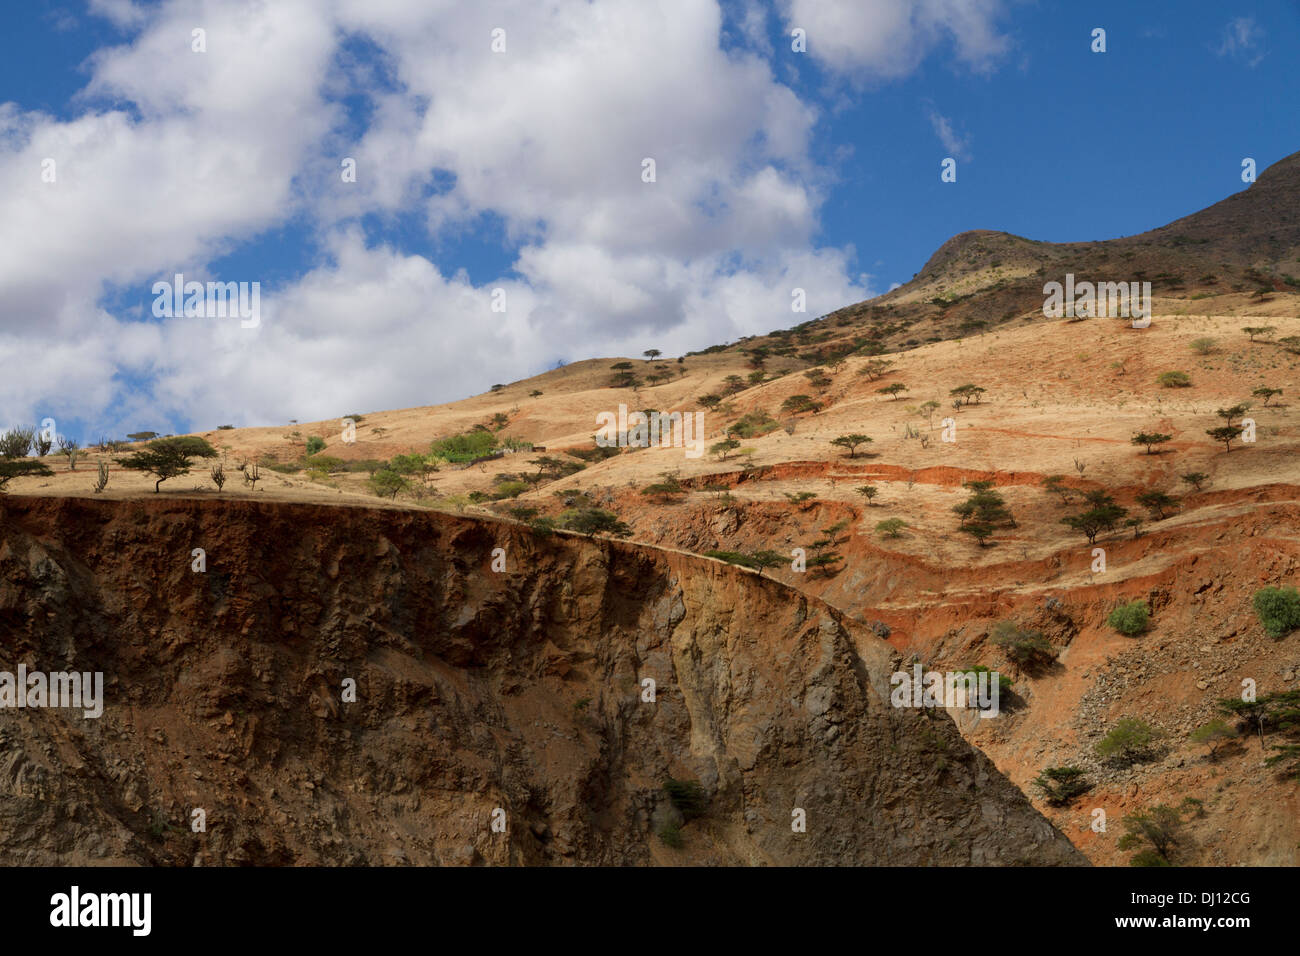 Semi-arid vegetation in the Huancabamba Depression, Cajamara, Peru Stock Photo